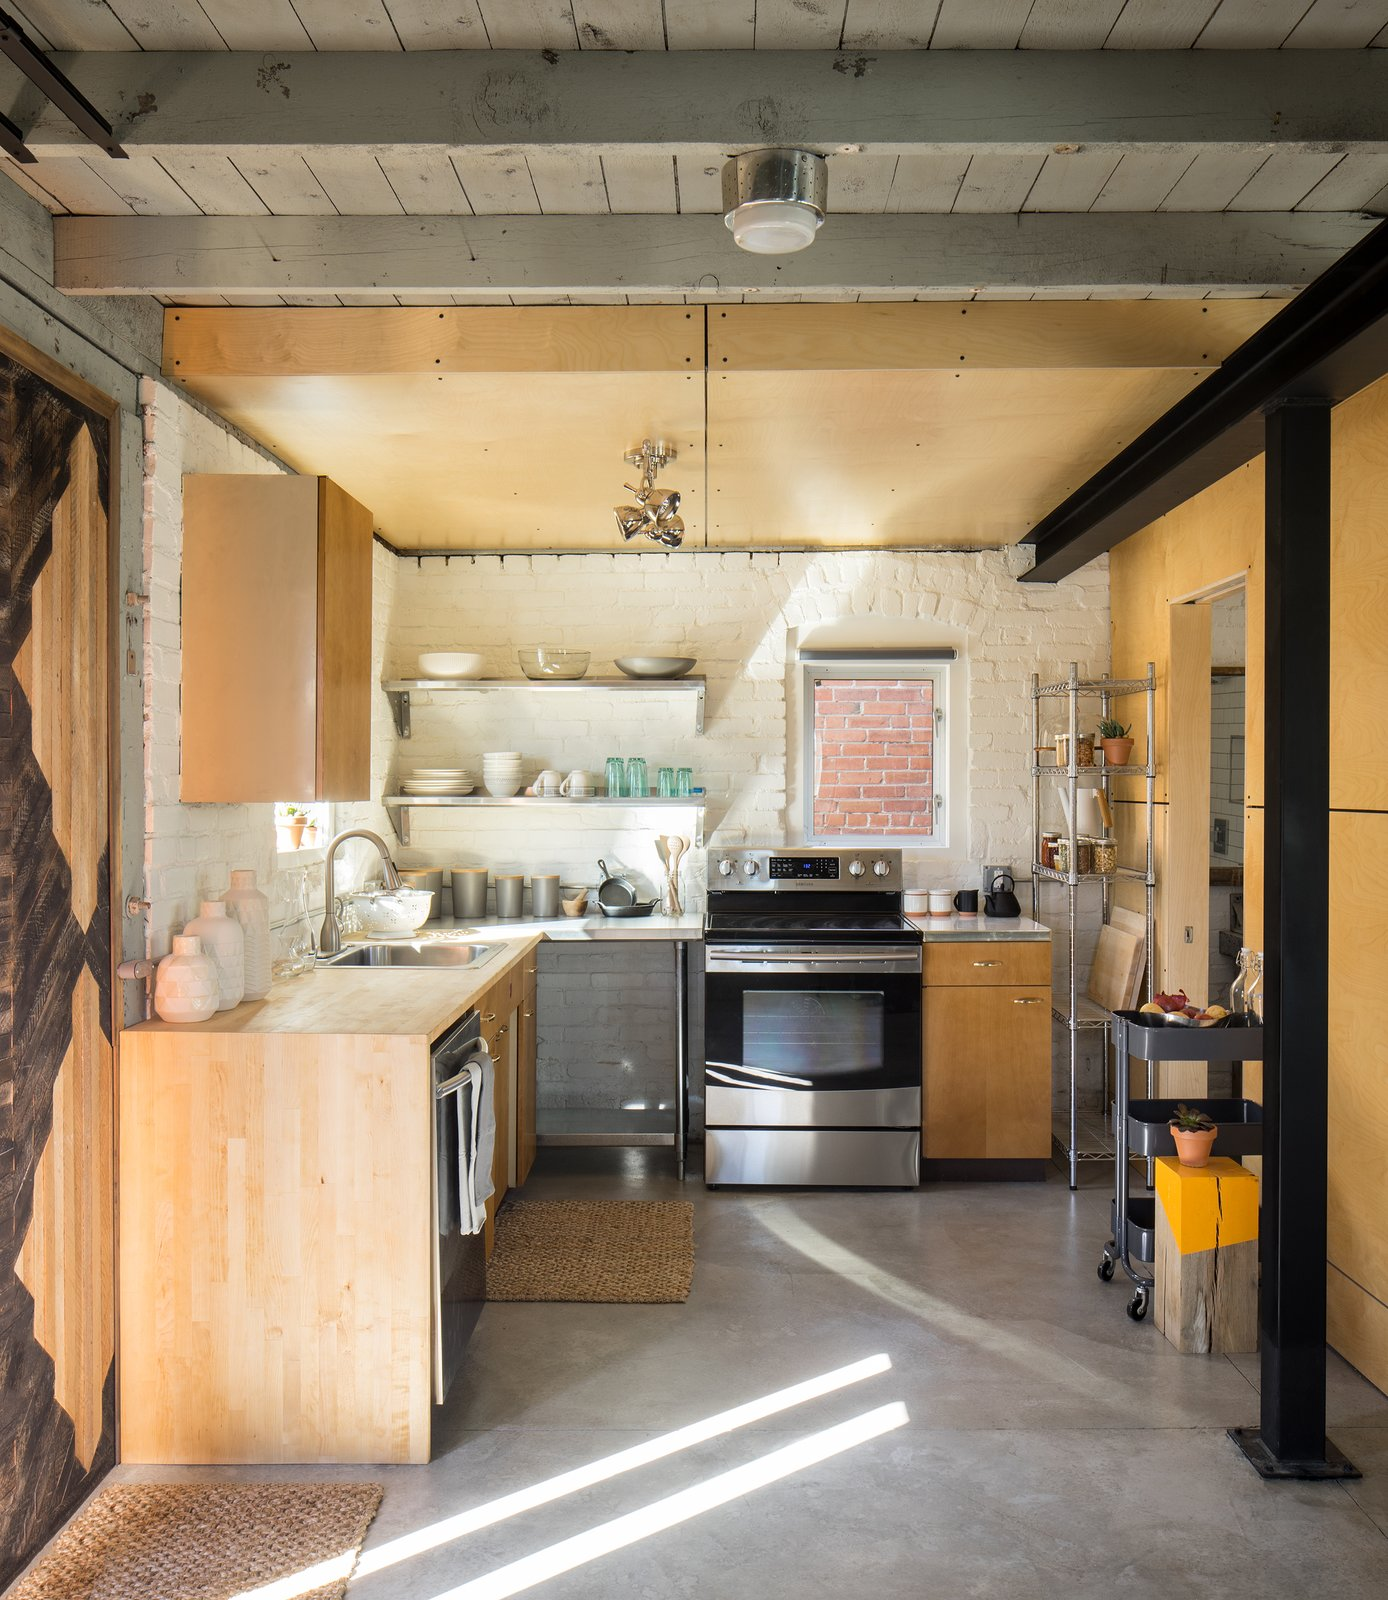 Kitchen, Wood, Metal, Concrete, Brick, Ceiling, Range, Dishwasher, and Drop In Kitchen Area with lath wall panel. Reuse of kitchen cabinets from a 1950's ranch home. Baltic birch wall and ceiling panels.   Best Kitchen Wood Brick Photos from Blacksmith Shop